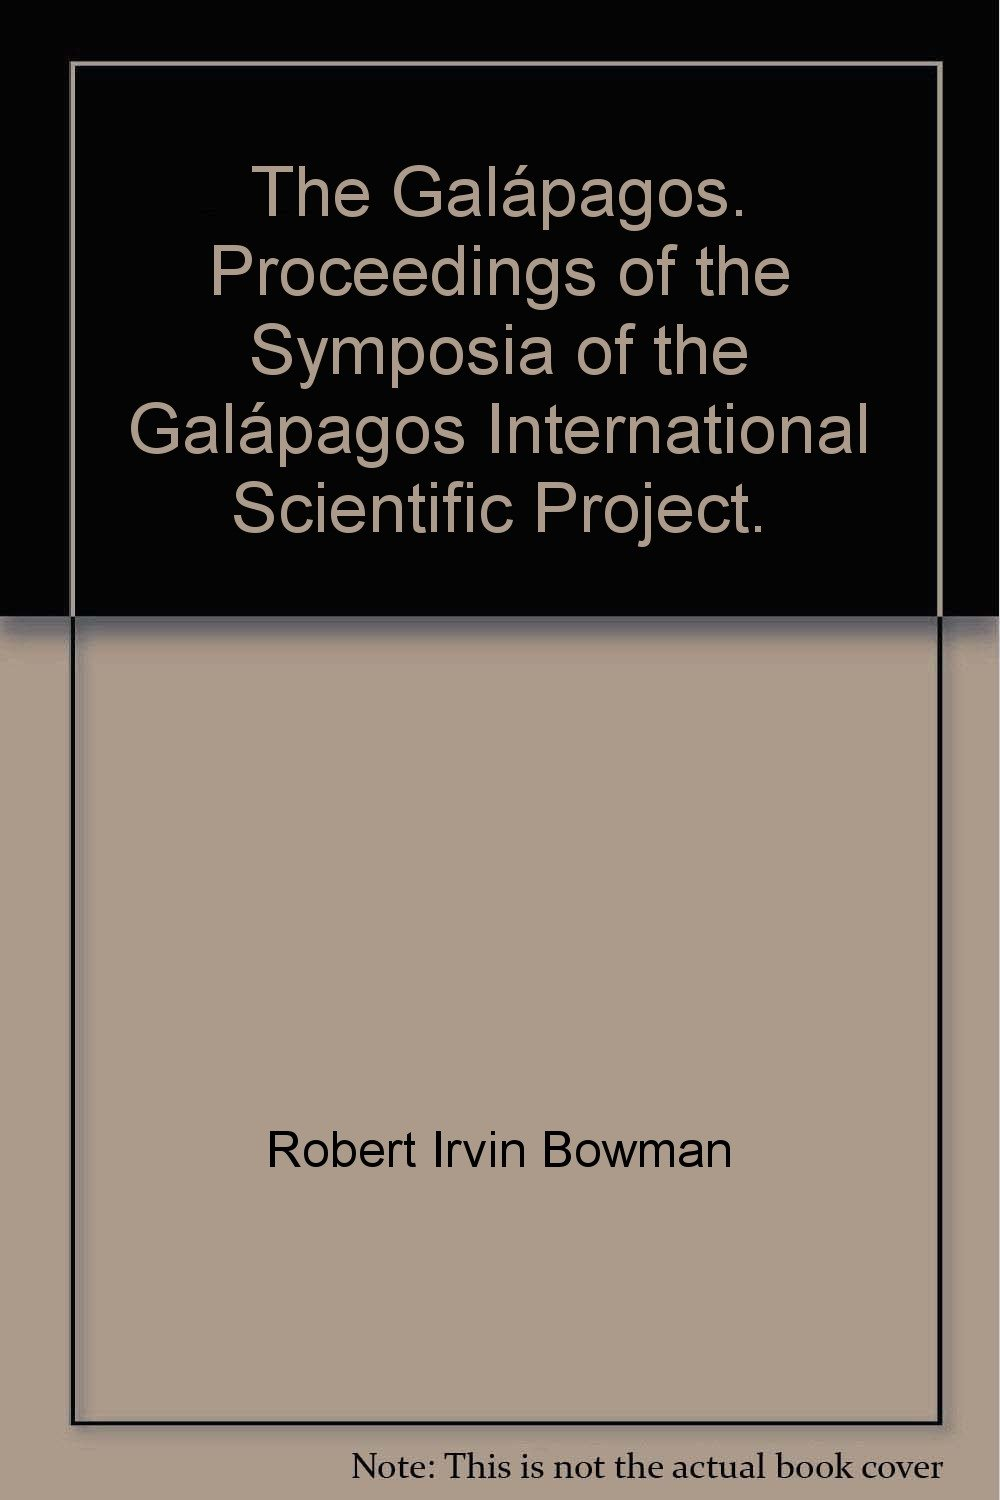 The Galápagos. Proceedings of the Symposia of the Galápagos International Scientific Project.